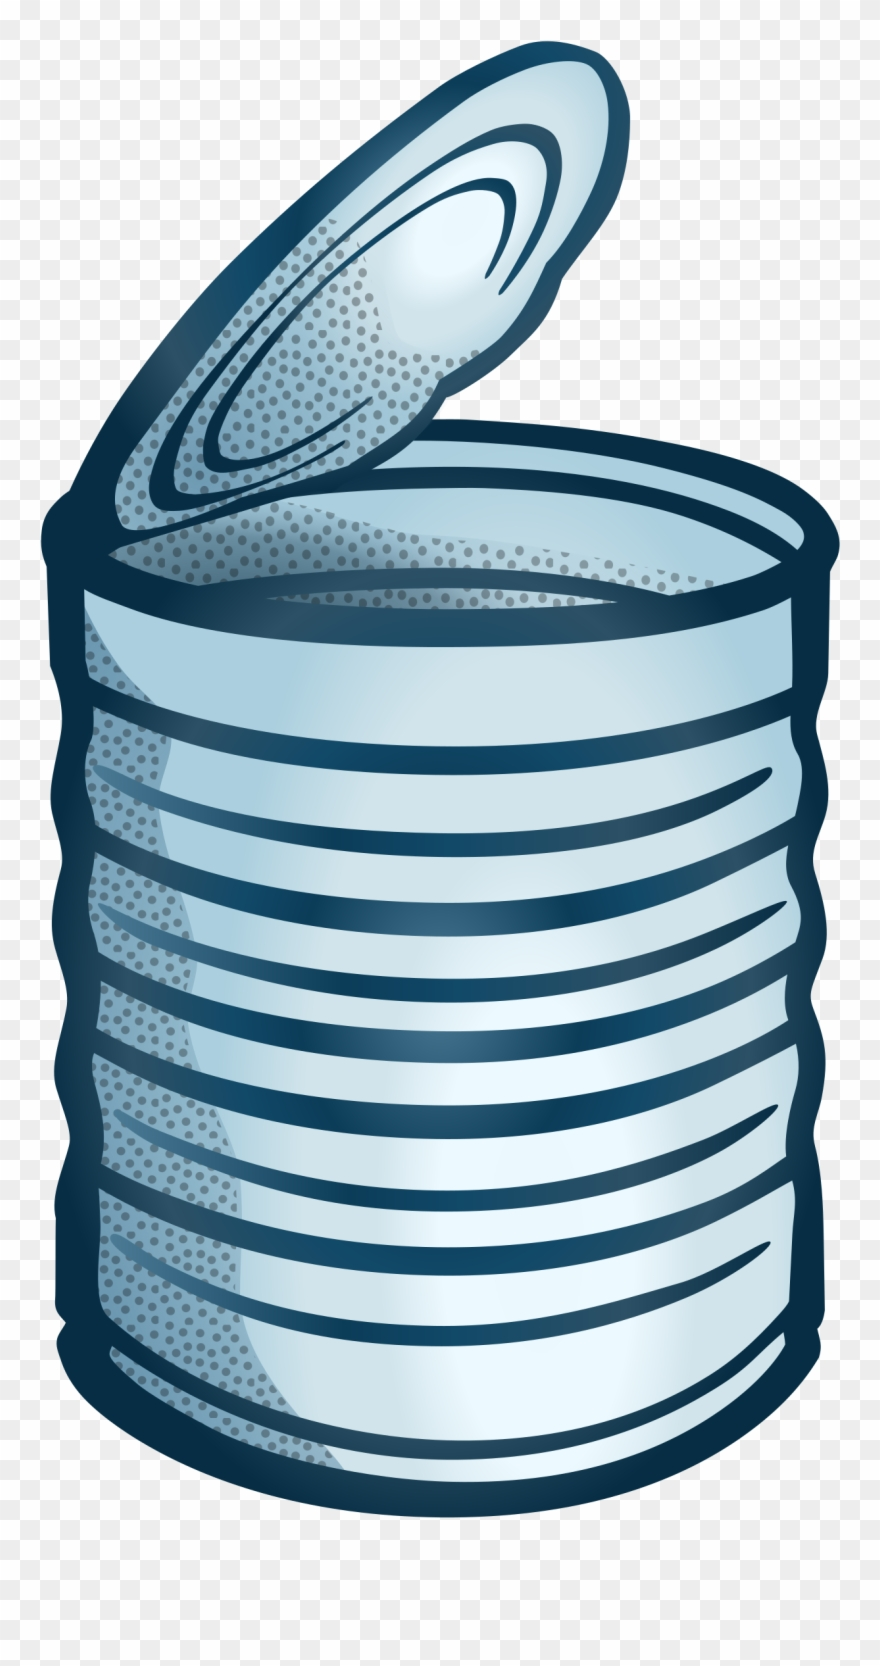 Can stock image clipart clip royalty free download Tin Can Can Stock Photo Drink Can Download - Clipart Can - Png ... clip royalty free download